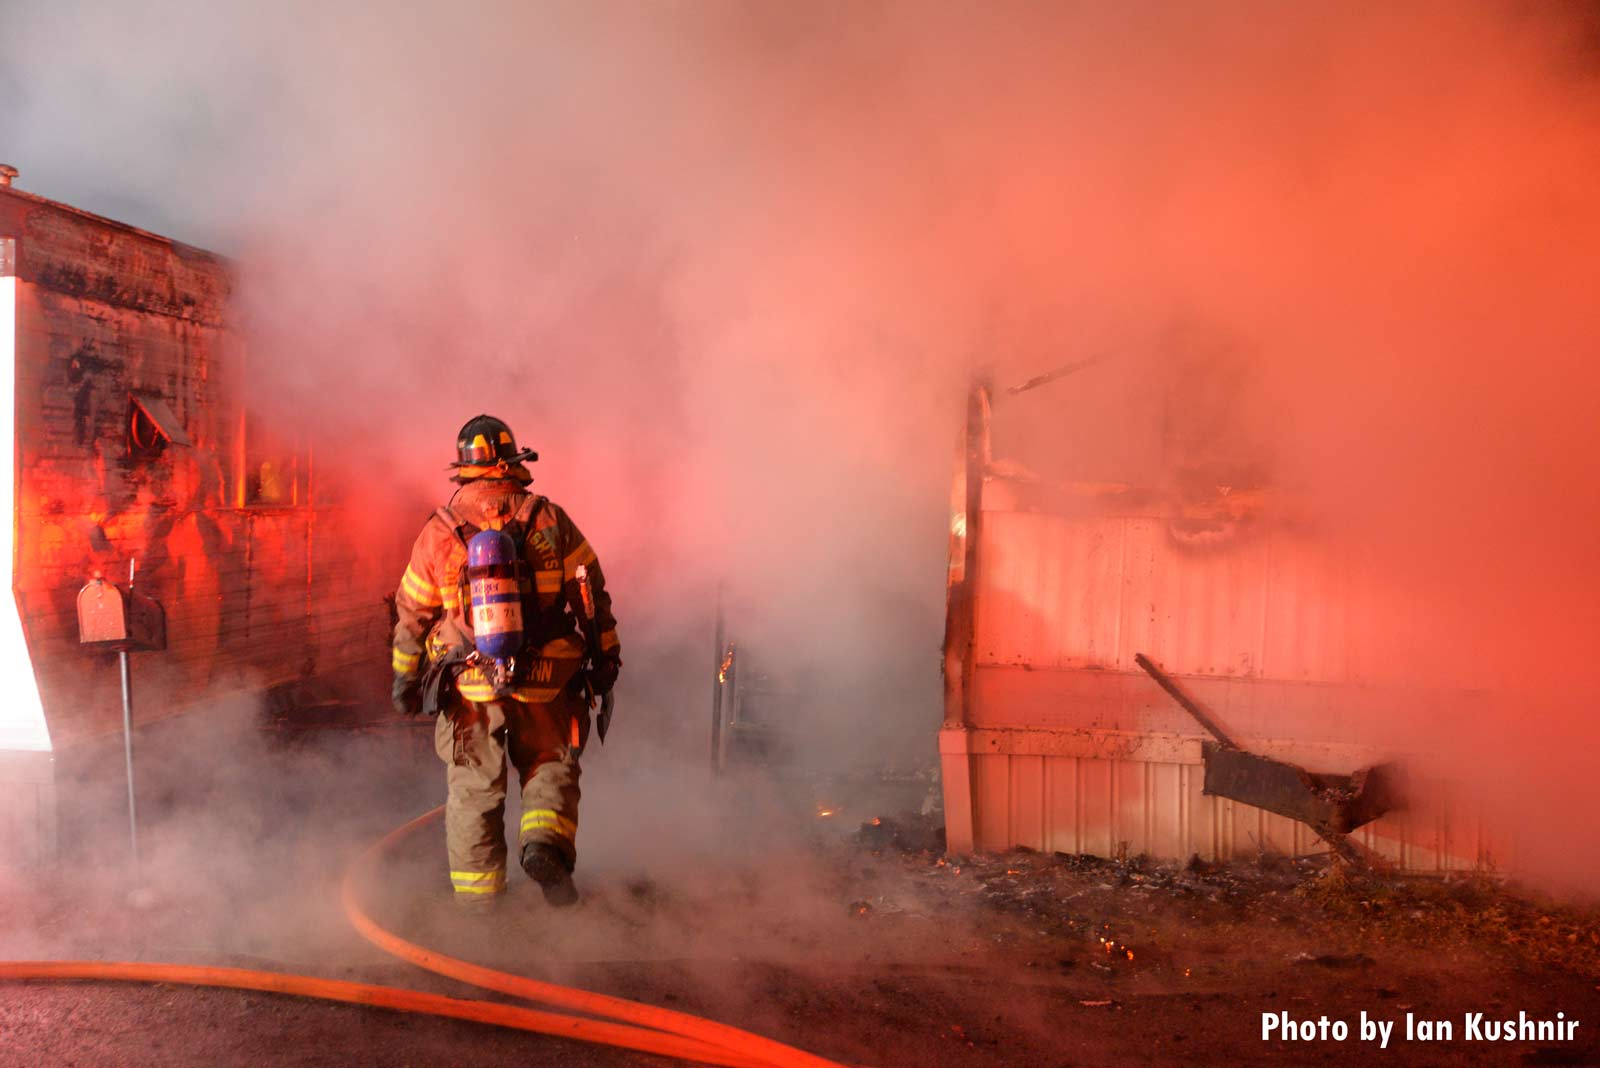 Firefighter amid smoke during a trailer fire